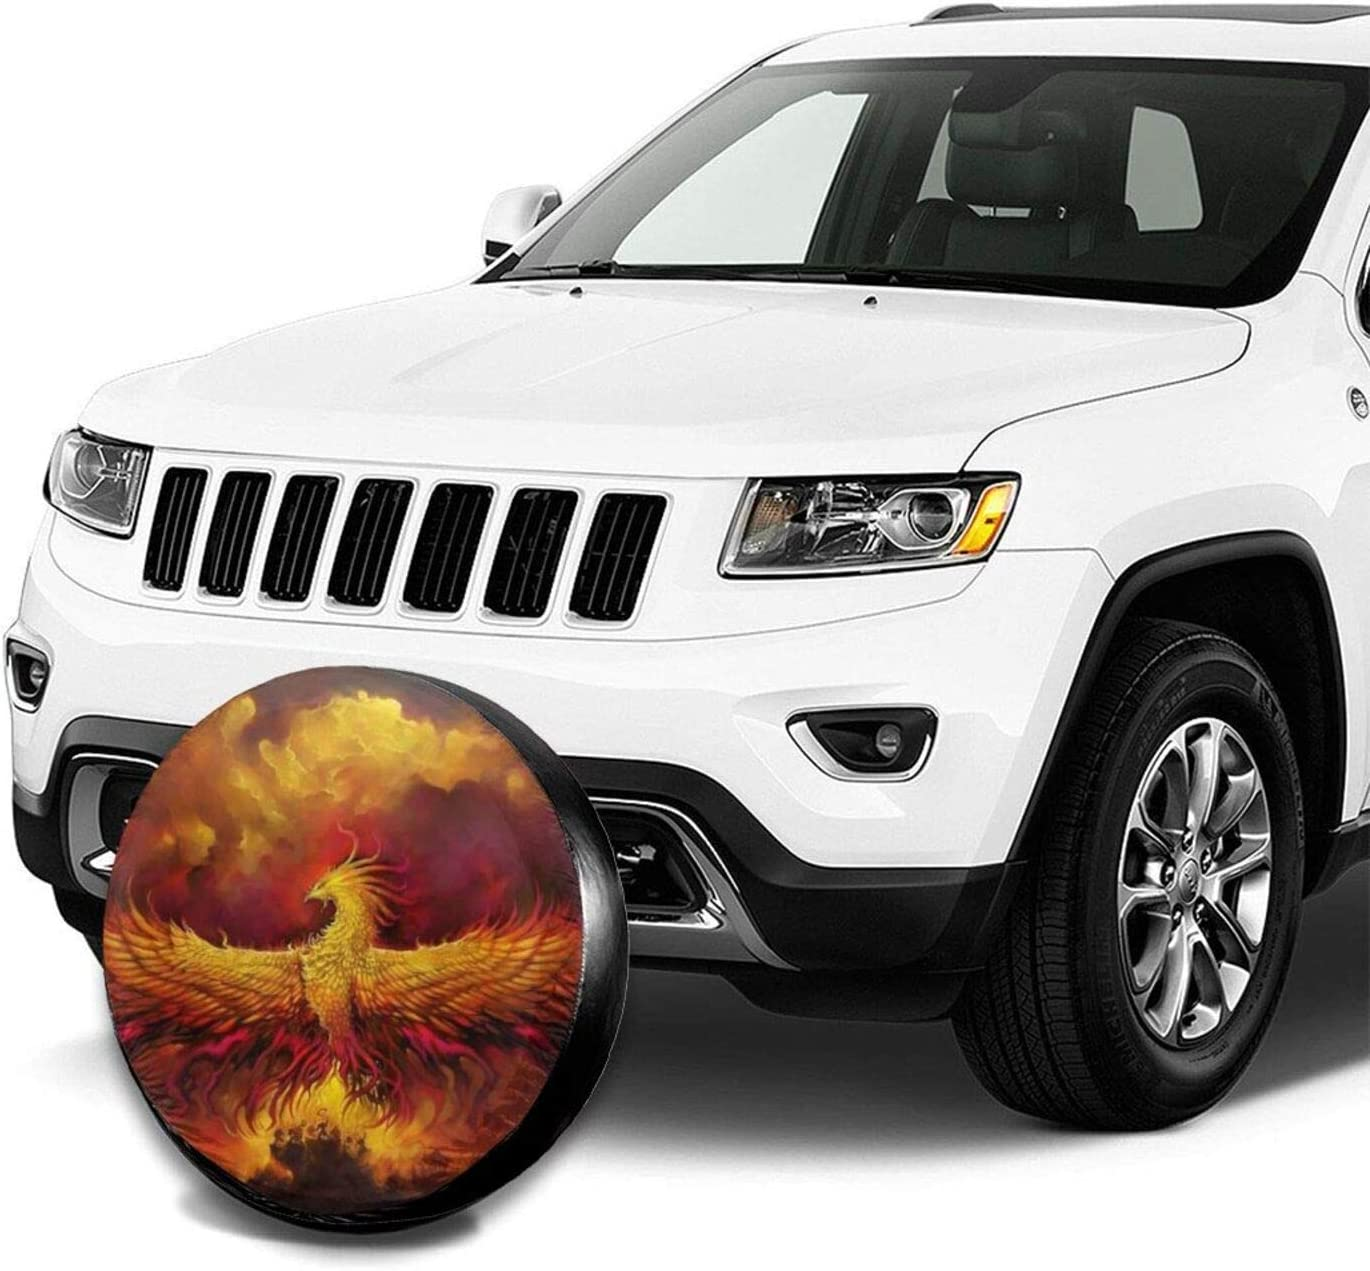 Barbershop B Fiery Phoenix Spare Tire Cover,Universal Fit for Camping Car Jeep Trailer RV SUV Truck and Many Vehicle,Weatherproof Sun Protection Tire Protectors